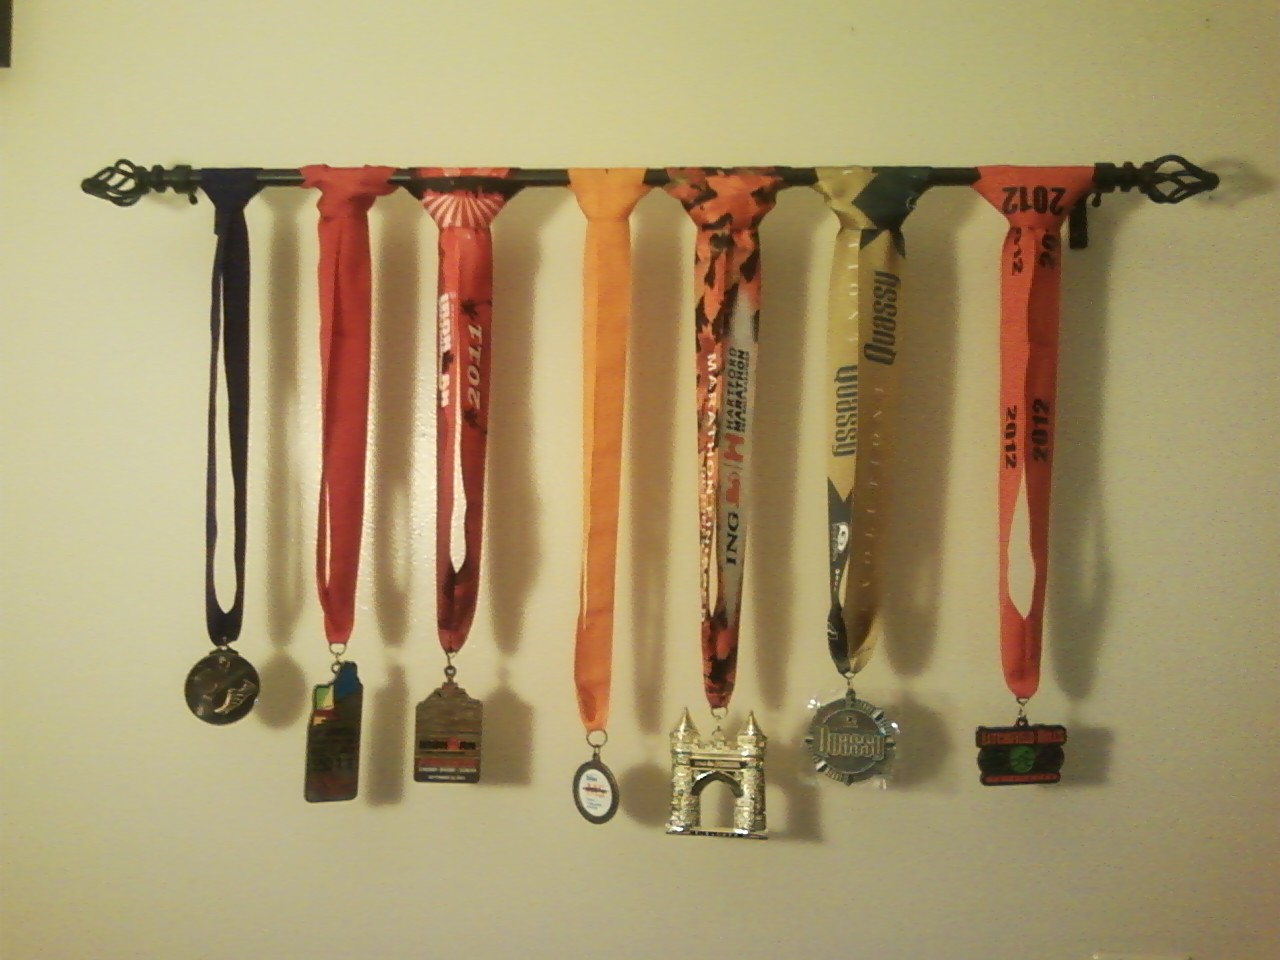 Becoming An Ironman: Medal Display